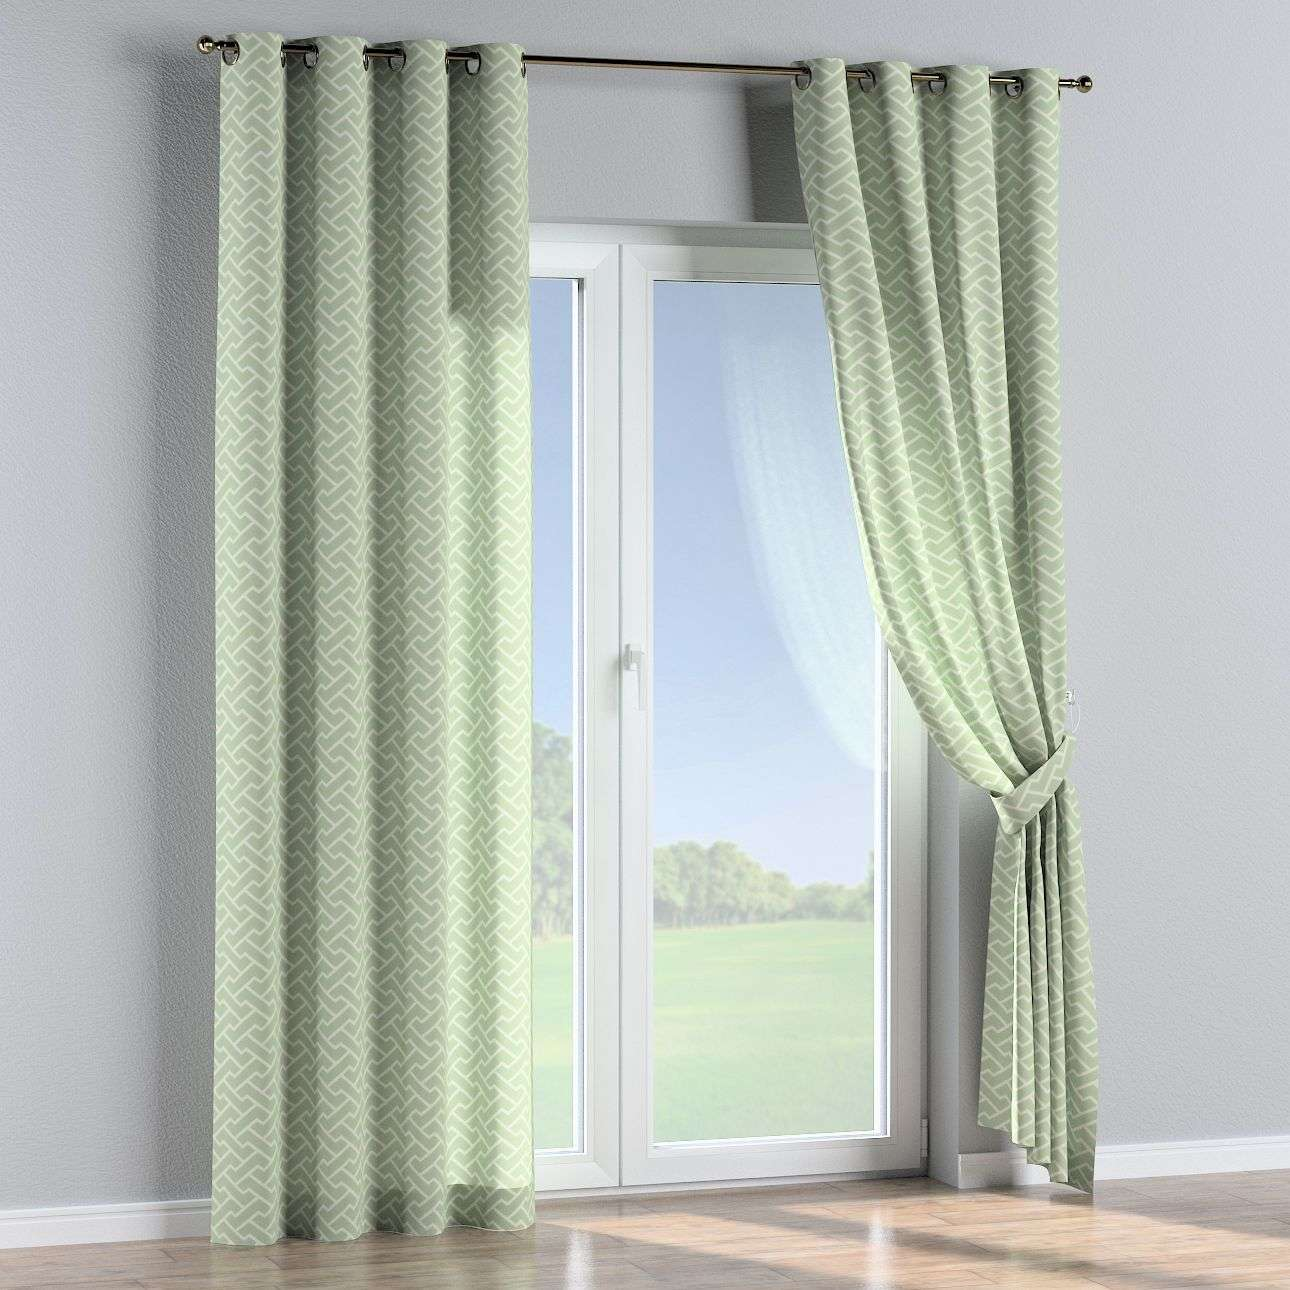 Eyelet curtains 130 x 260 cm (51 x 102 inch) in collection Comic Book & Geo Prints, fabric: 141-63